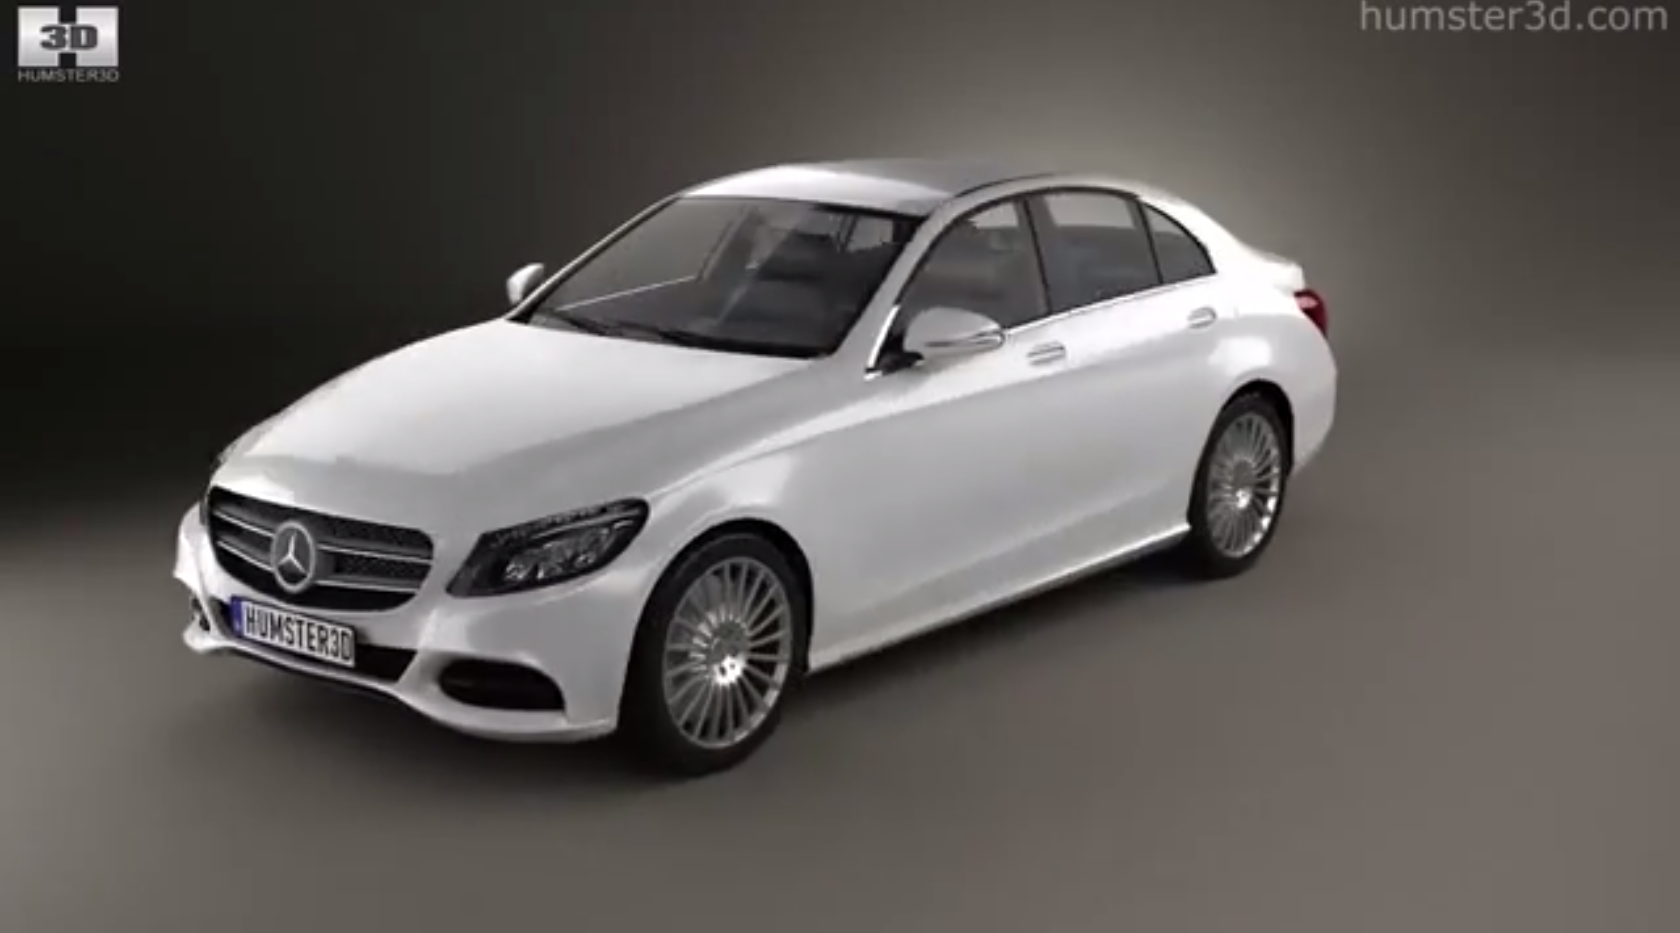 2015 mercedes benz c class w205 rendered in 3d video autoevolution. Black Bedroom Furniture Sets. Home Design Ideas